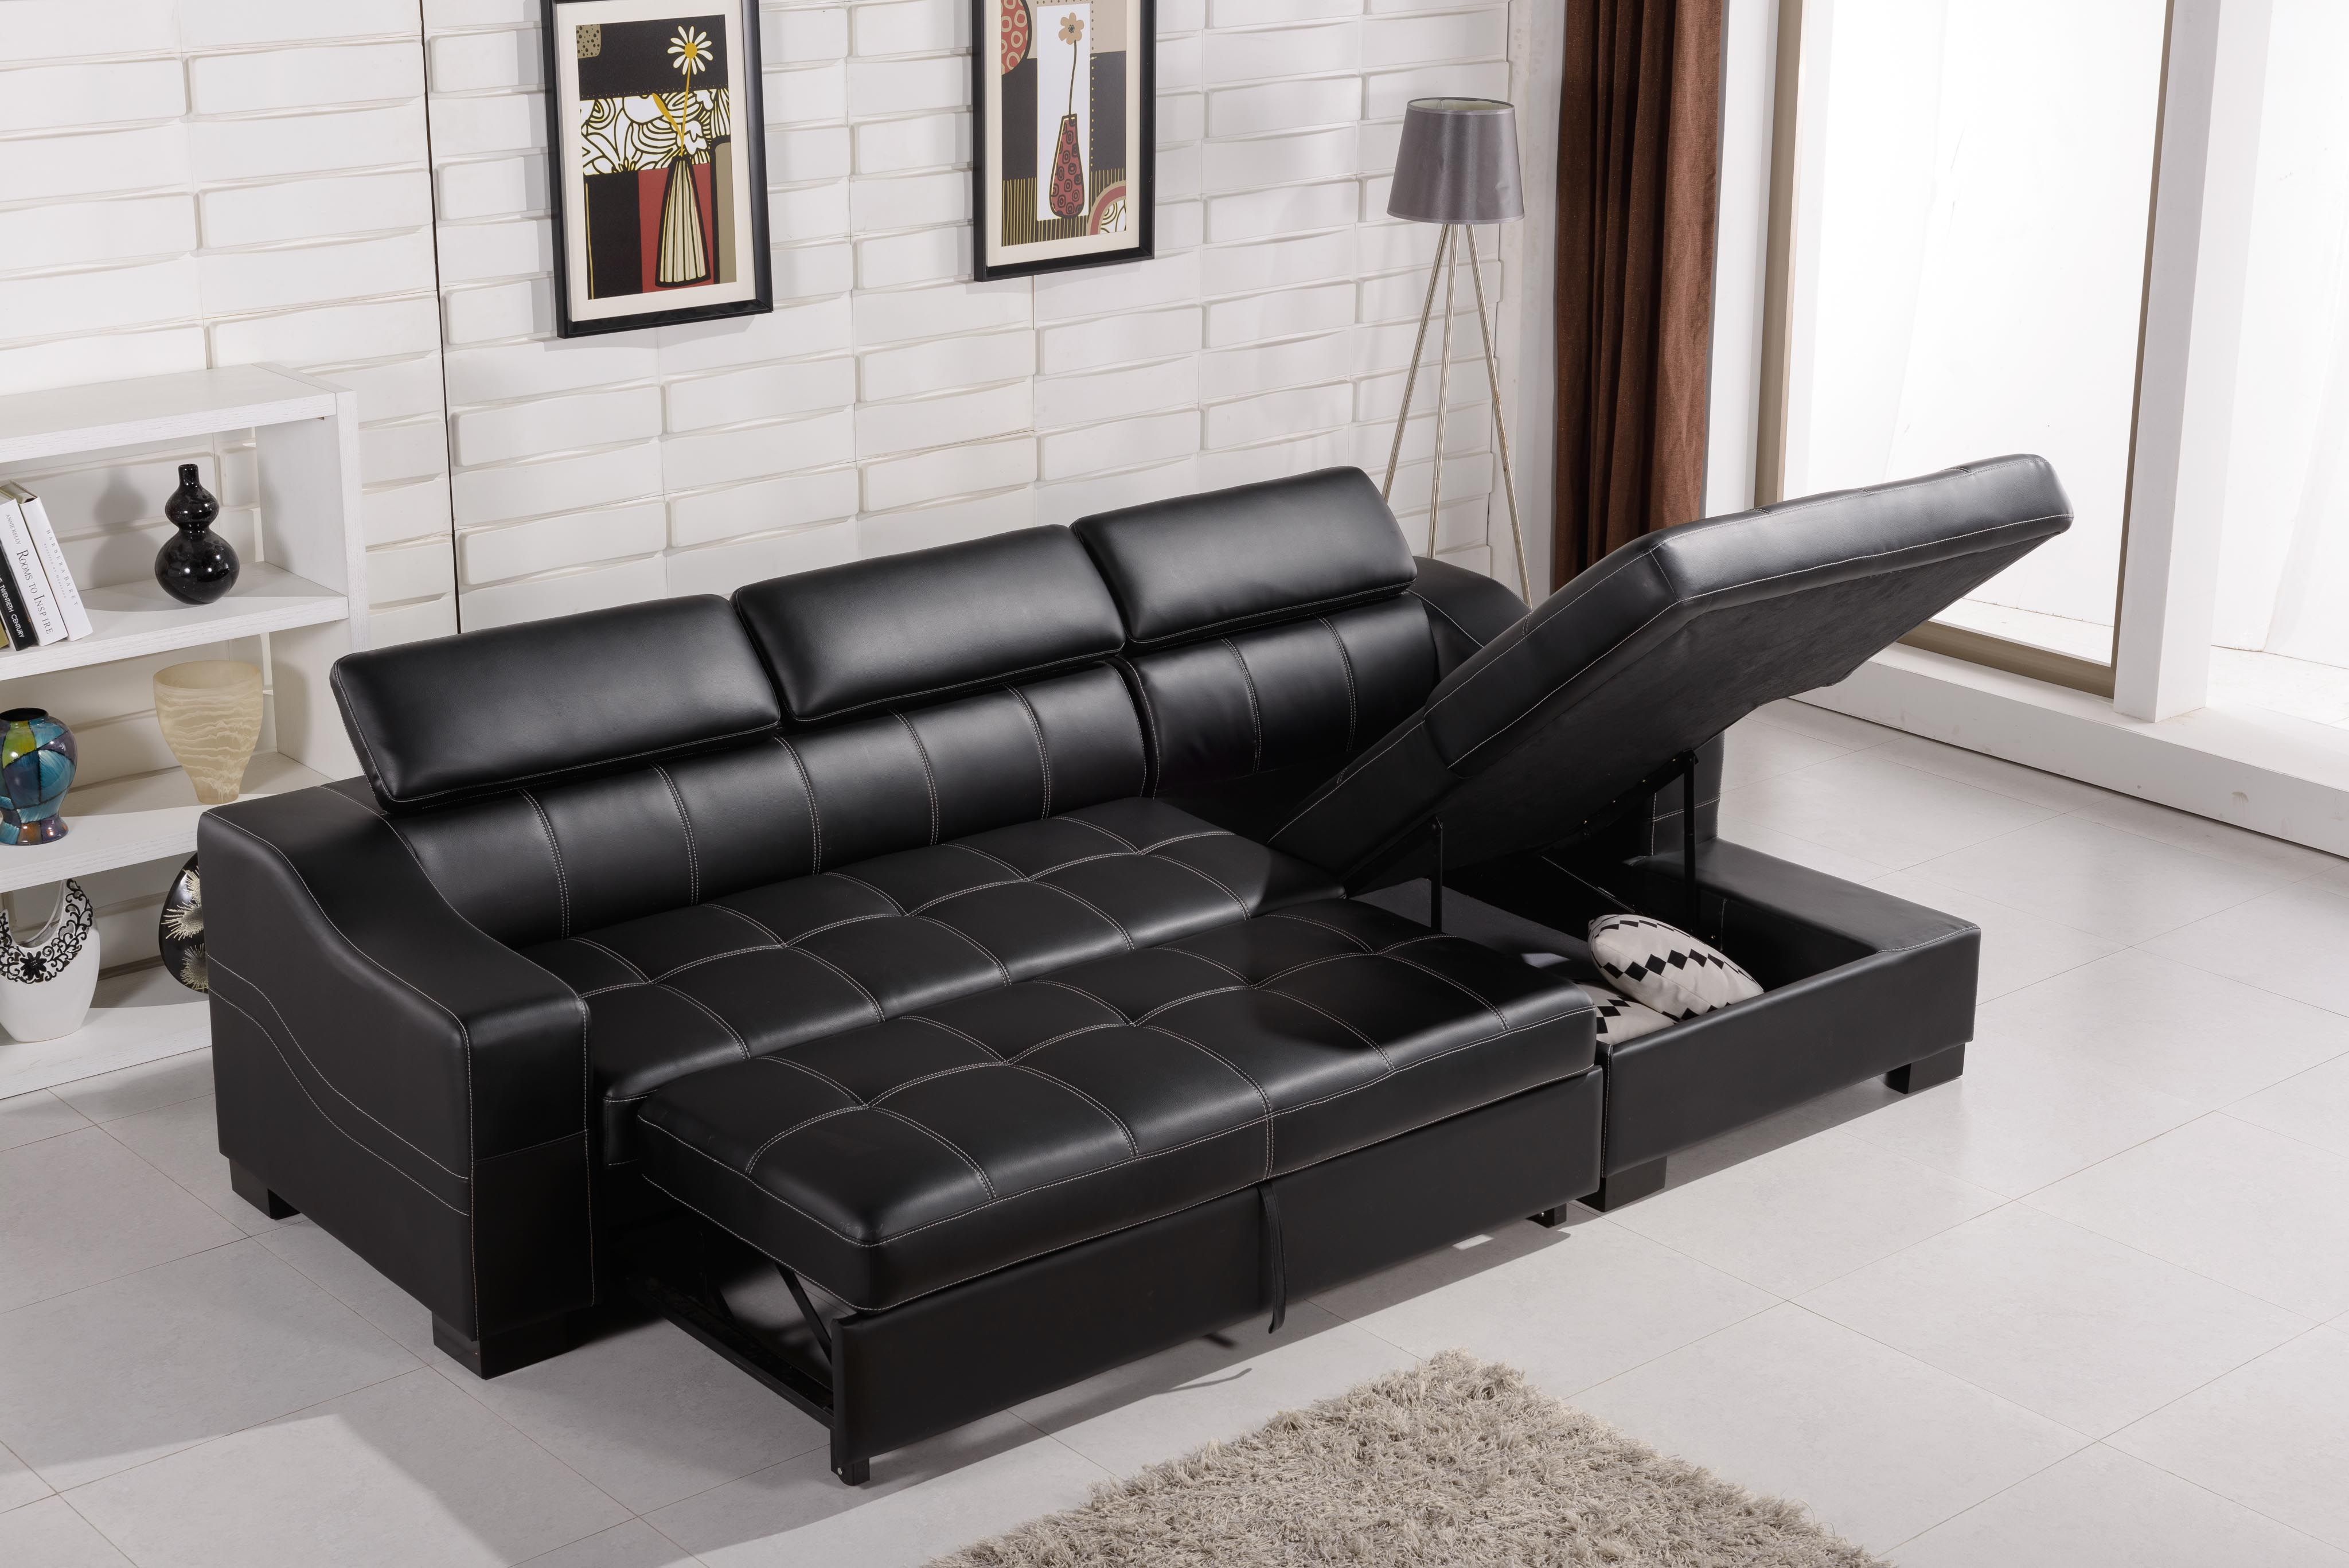 Sofa Beds With Storage Compact Furniture Pieces For Today S Small Living Space Black Leather Sofa Bed Sofa Bed With Chaise Leather Sofa Bed